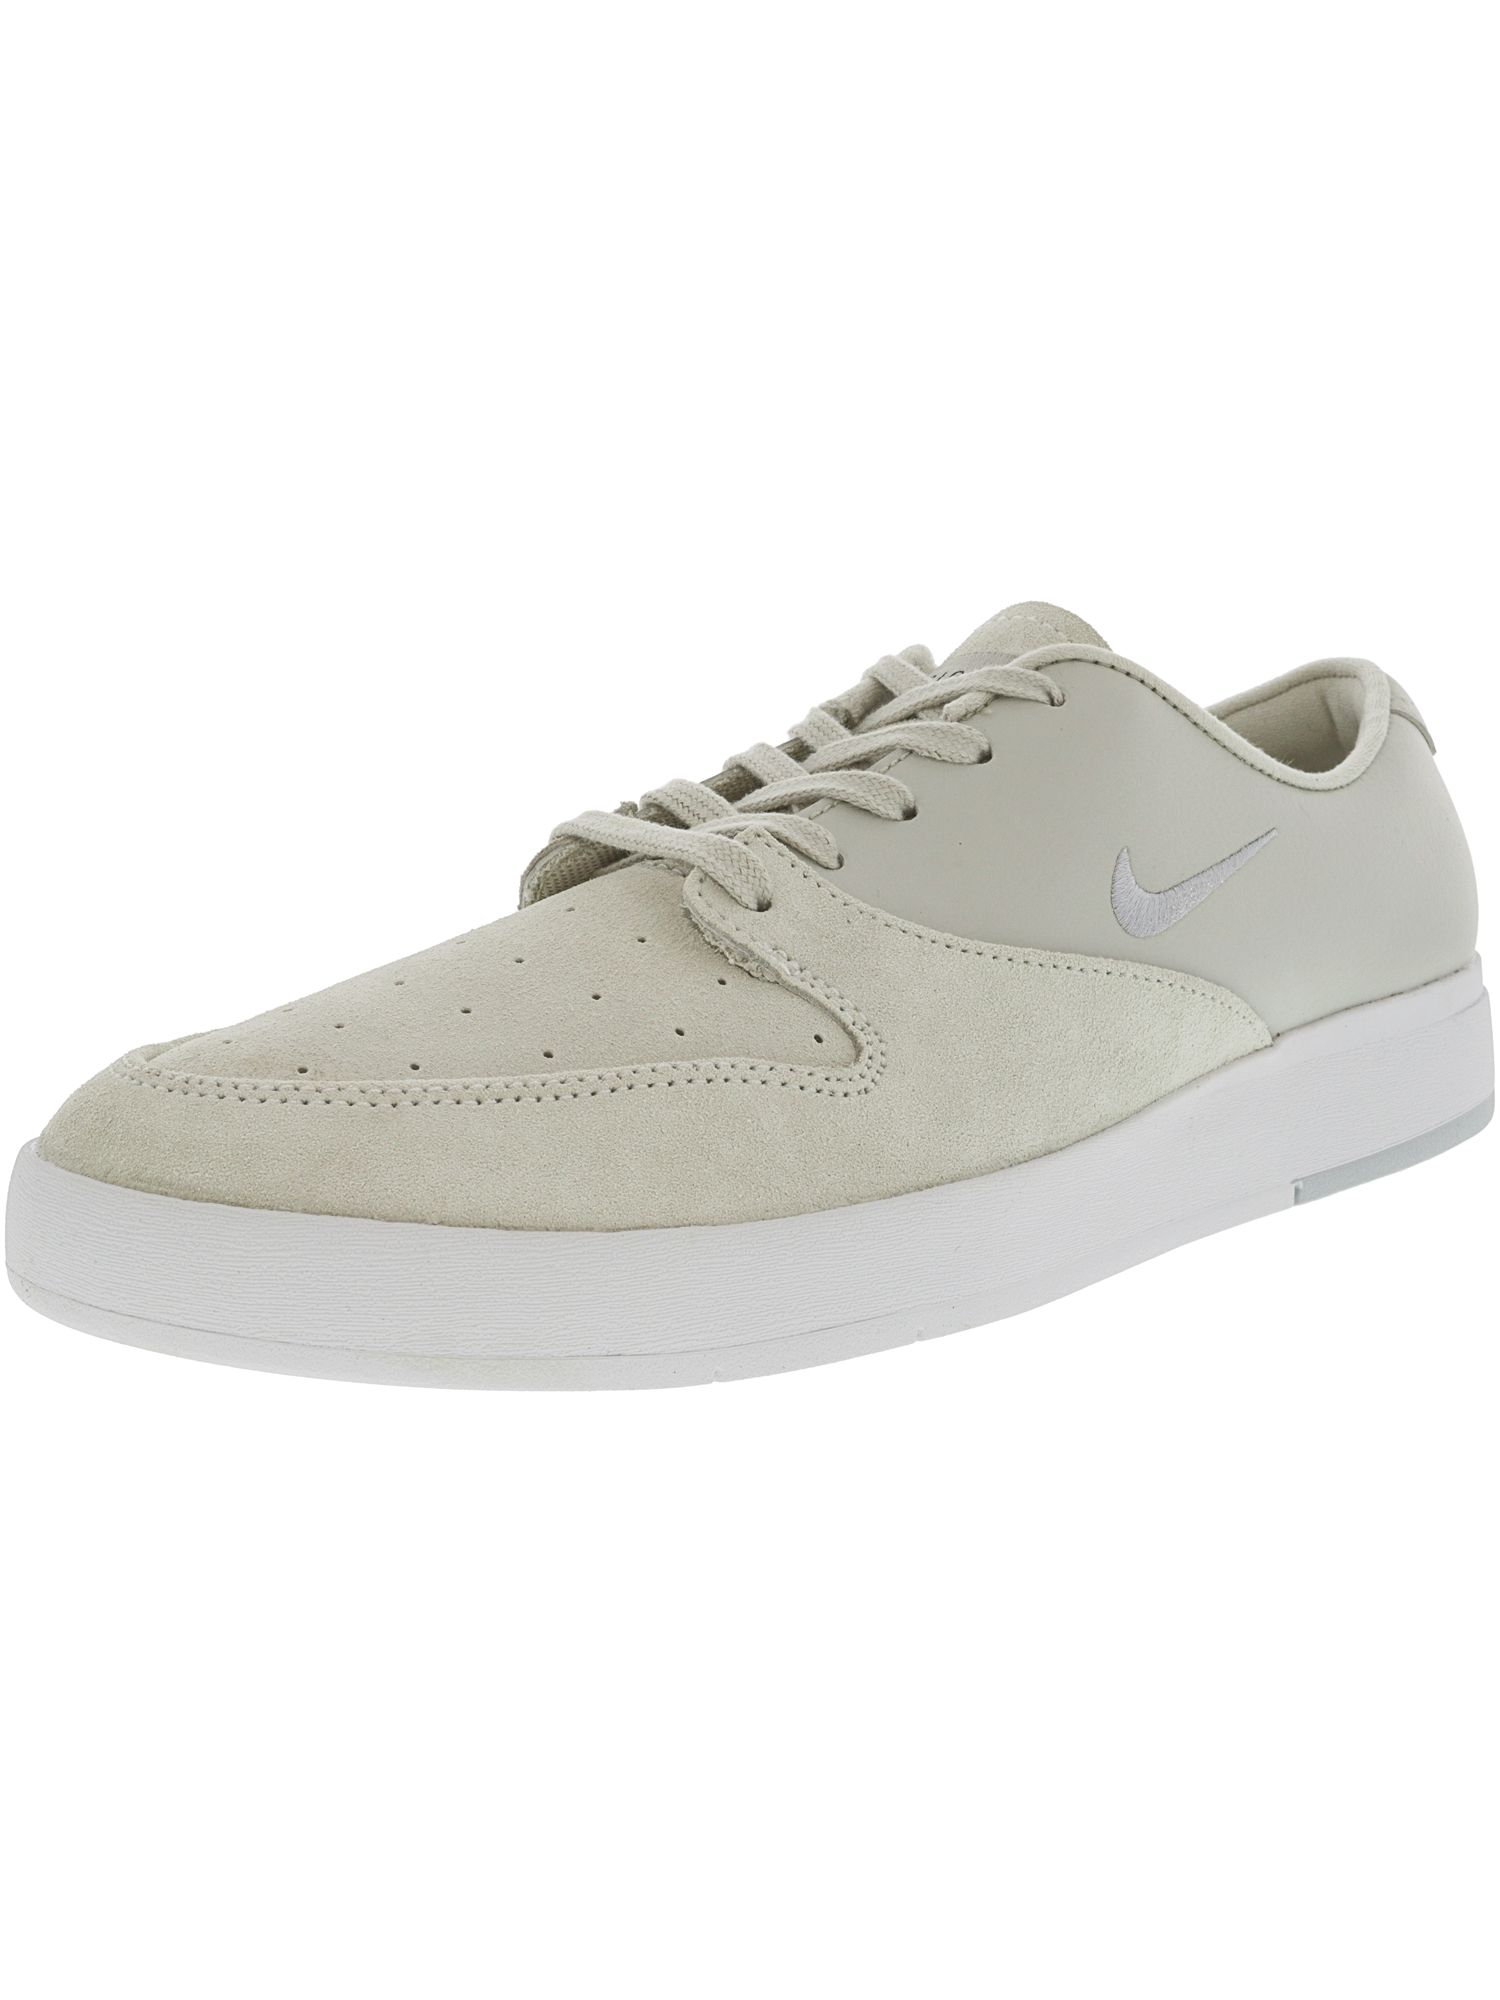 new concept a77ec 9d9ff NIKE NIKE MEN S SB ZOOM P-ROD X ANKLE-HIGH LEATHER SKATEBOARDING SHOE.